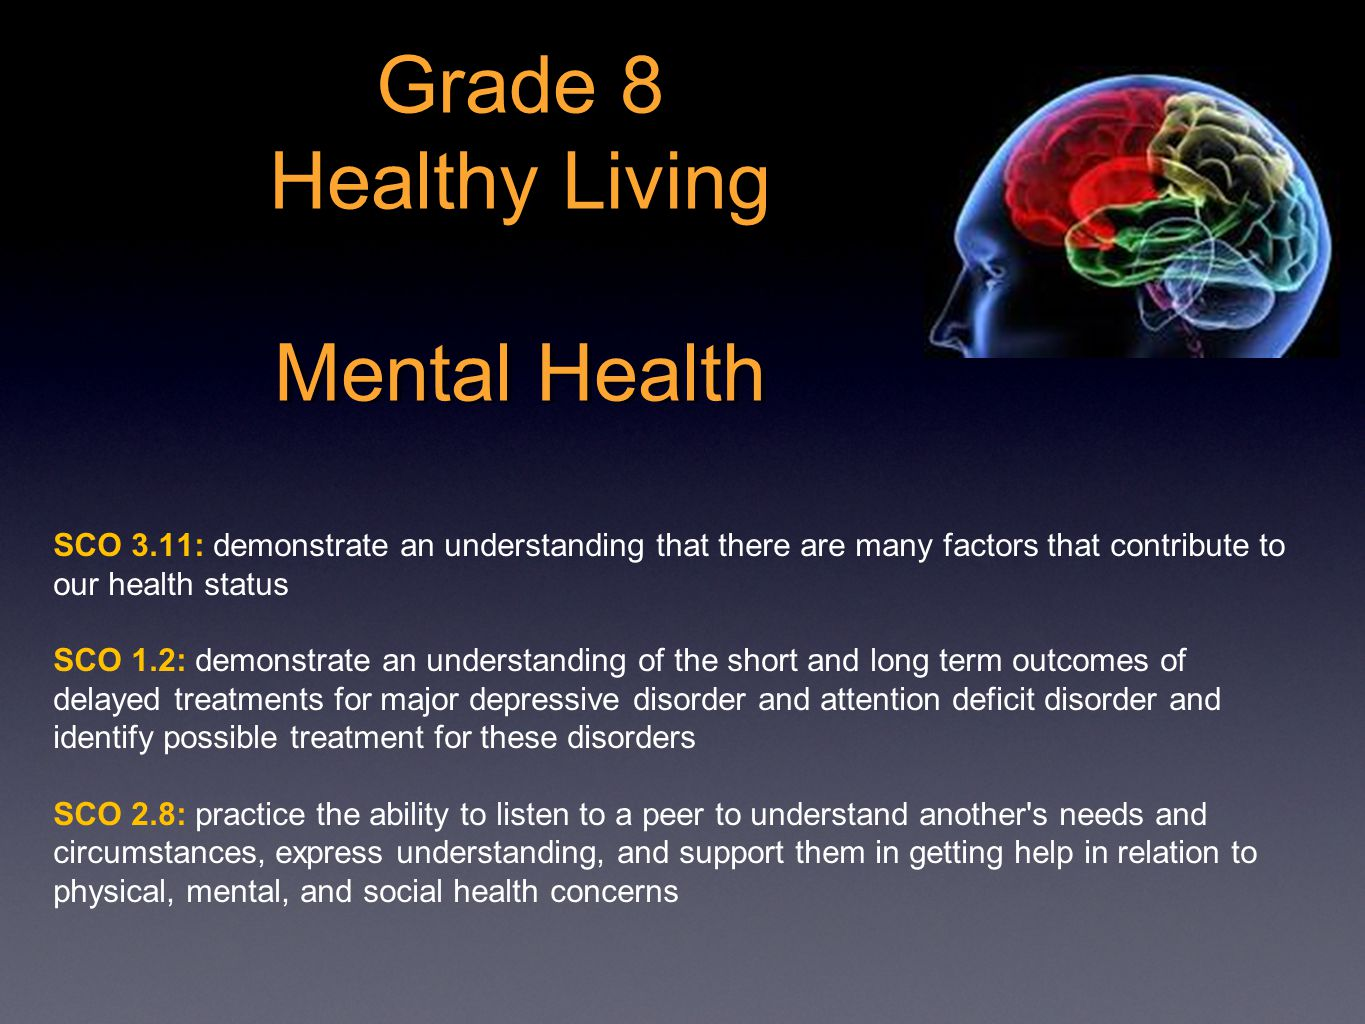 Grade 8 Healthy Living Mental Health SCO 3.11: demonstrate an understanding that there are many factors that contribute to our health status SCO 1.2: demonstrate an understanding of the short and long term outcomes of delayed treatments for major depressive disorder and attention deficit disorder and identify possible treatment for these disorders SCO 2.8: practice the ability to listen to a peer to understand another s needs and circumstances, express understanding, and support them in getting help in relation to physical, mental, and social health concerns